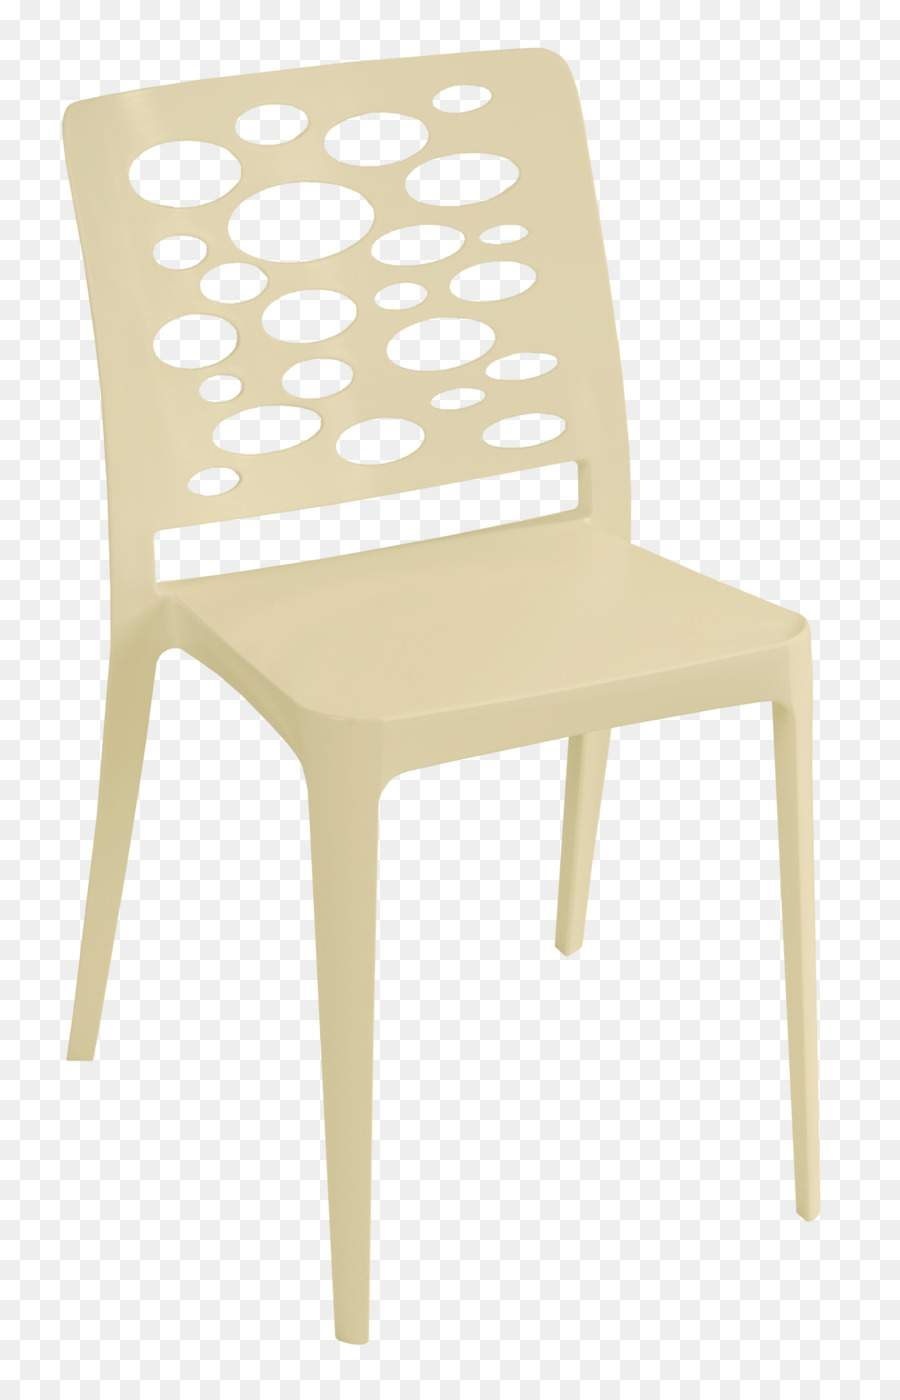 kisspng table cafe chair terrace garden furniture plastic chairs 5ae16ded37d081